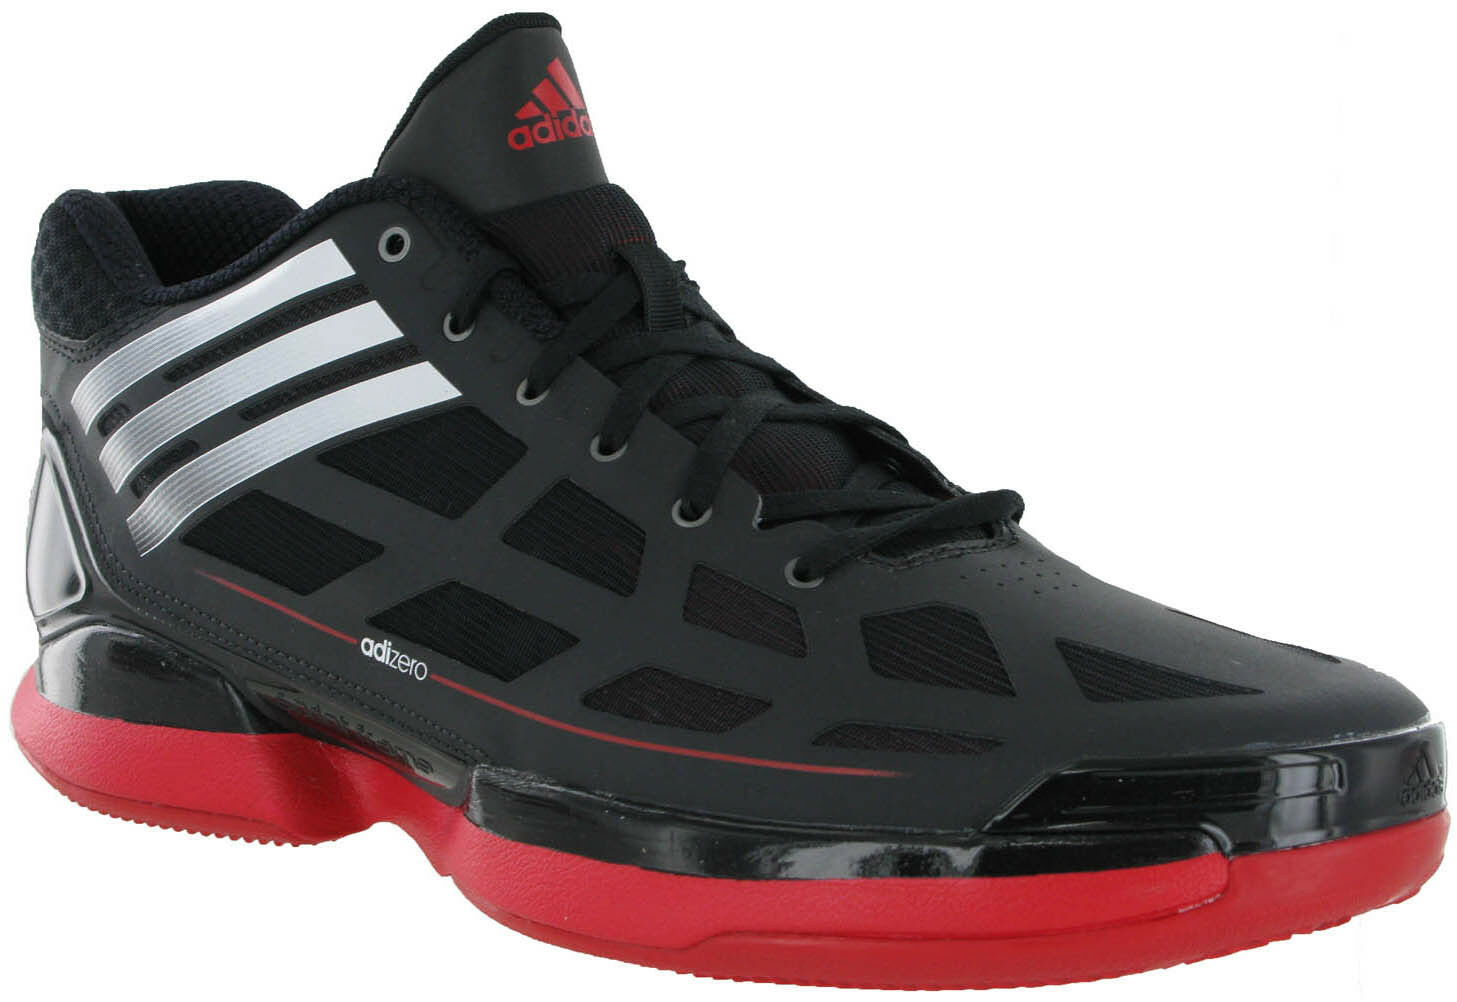 Adidas Crazy Light Lo G49697 Mens Casual Sports Fitness Basketball Trainers